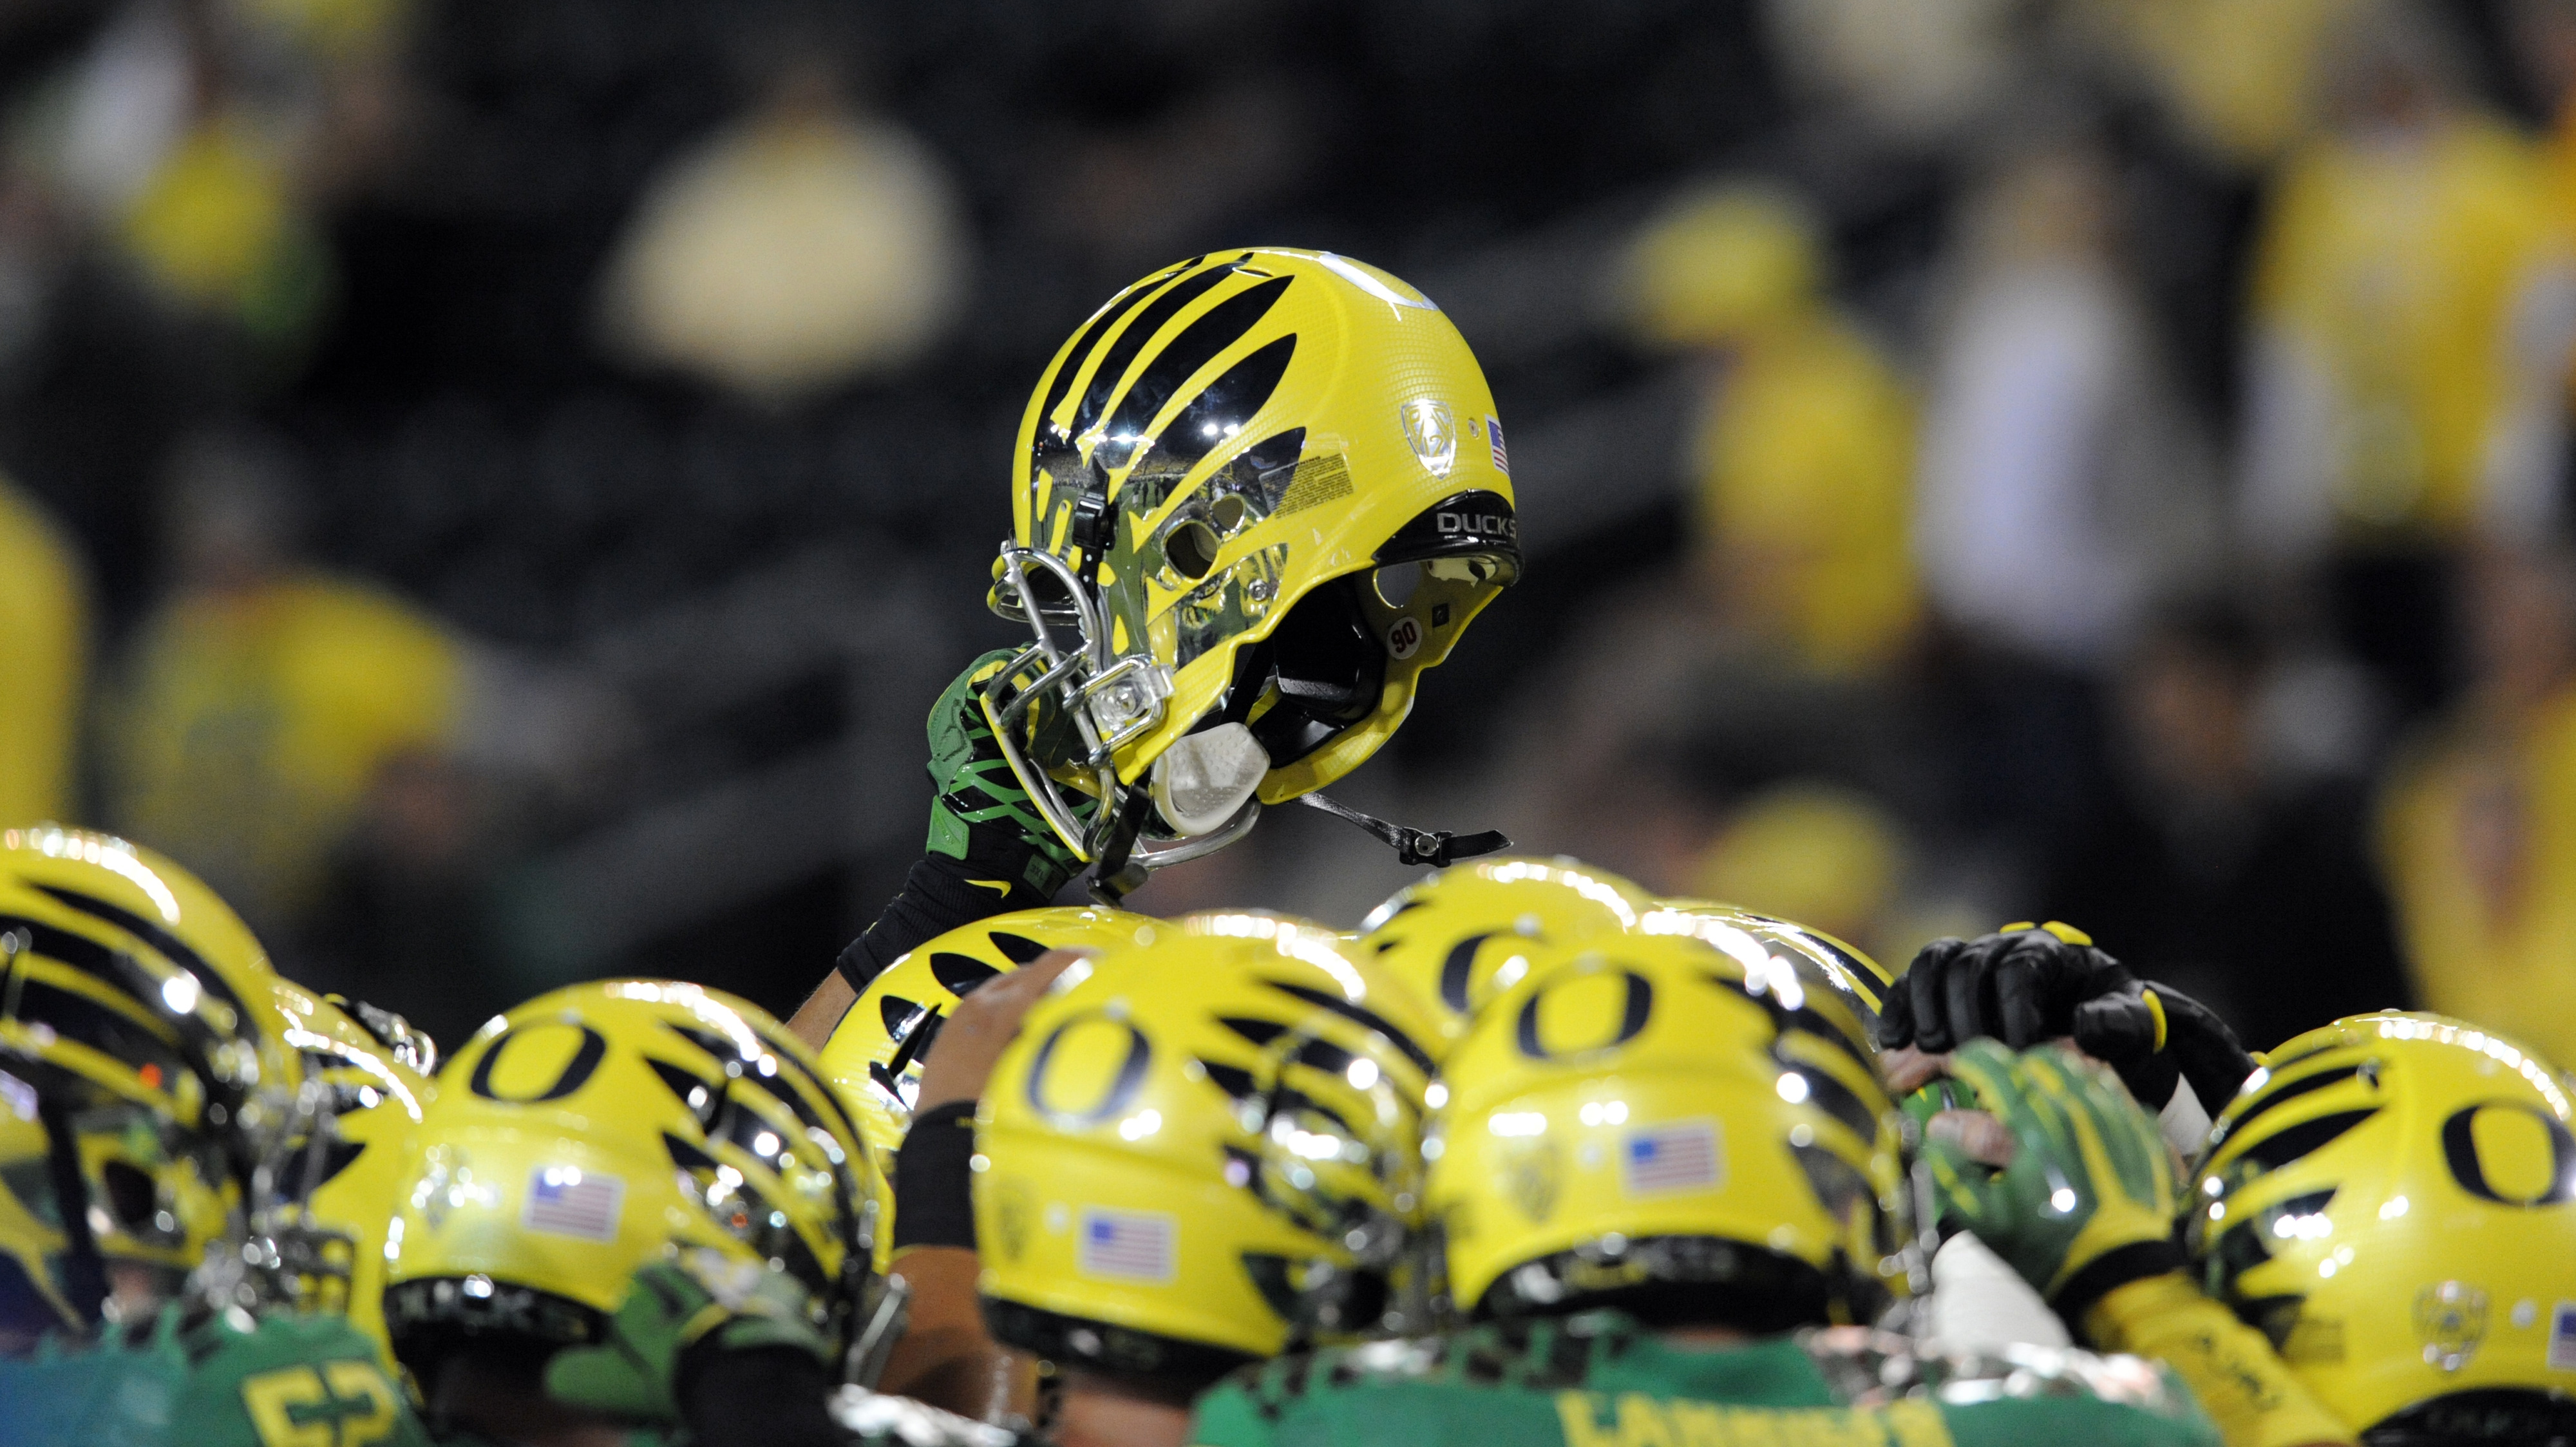 From head to toe, the Ducks set the tone.